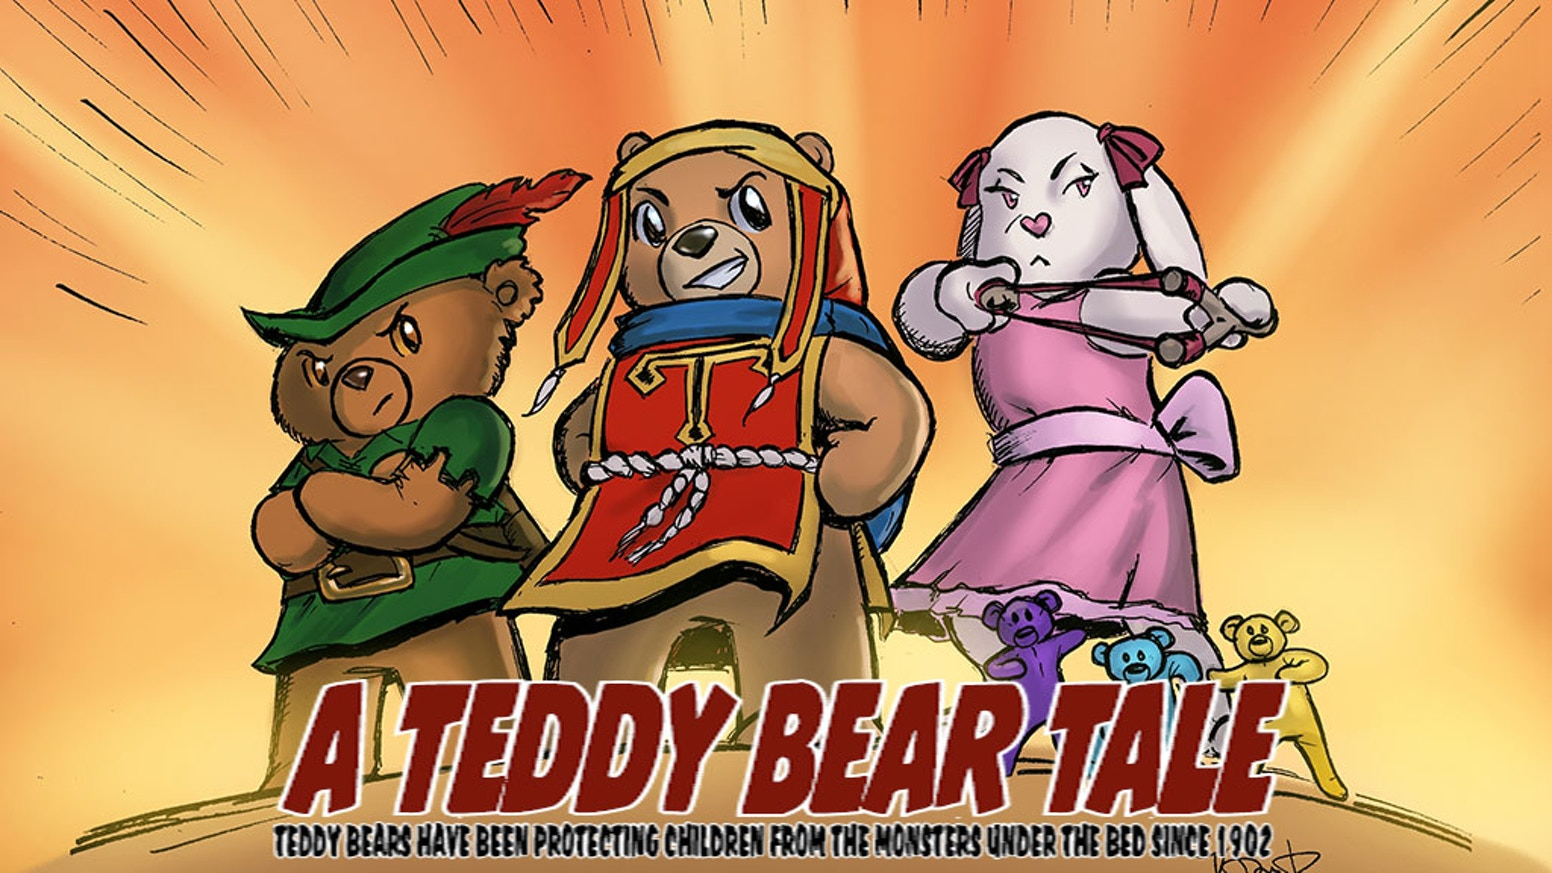 Teddy Bears have been protecting children from Monsters for over 100 years! Join the adventure in this all-ages action comic book.